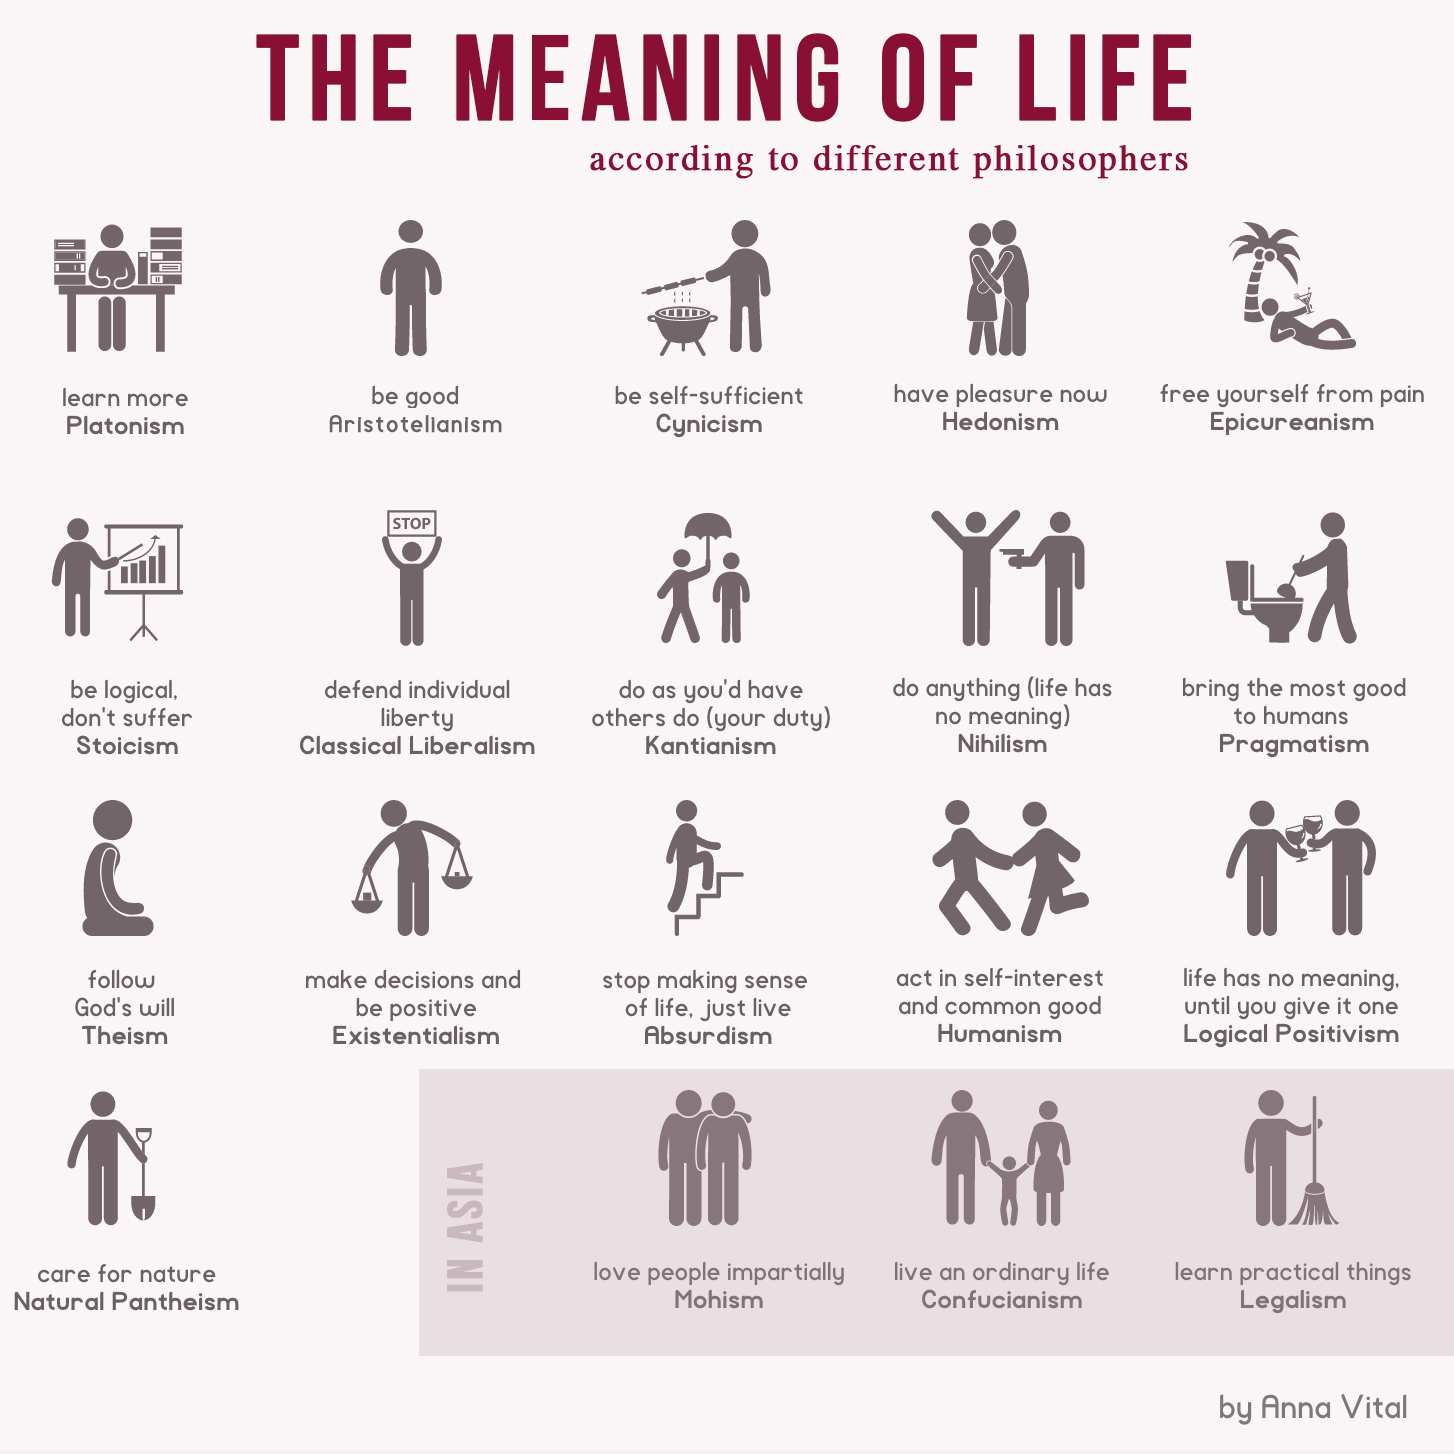 The Meaning of Life by Different Philosophers